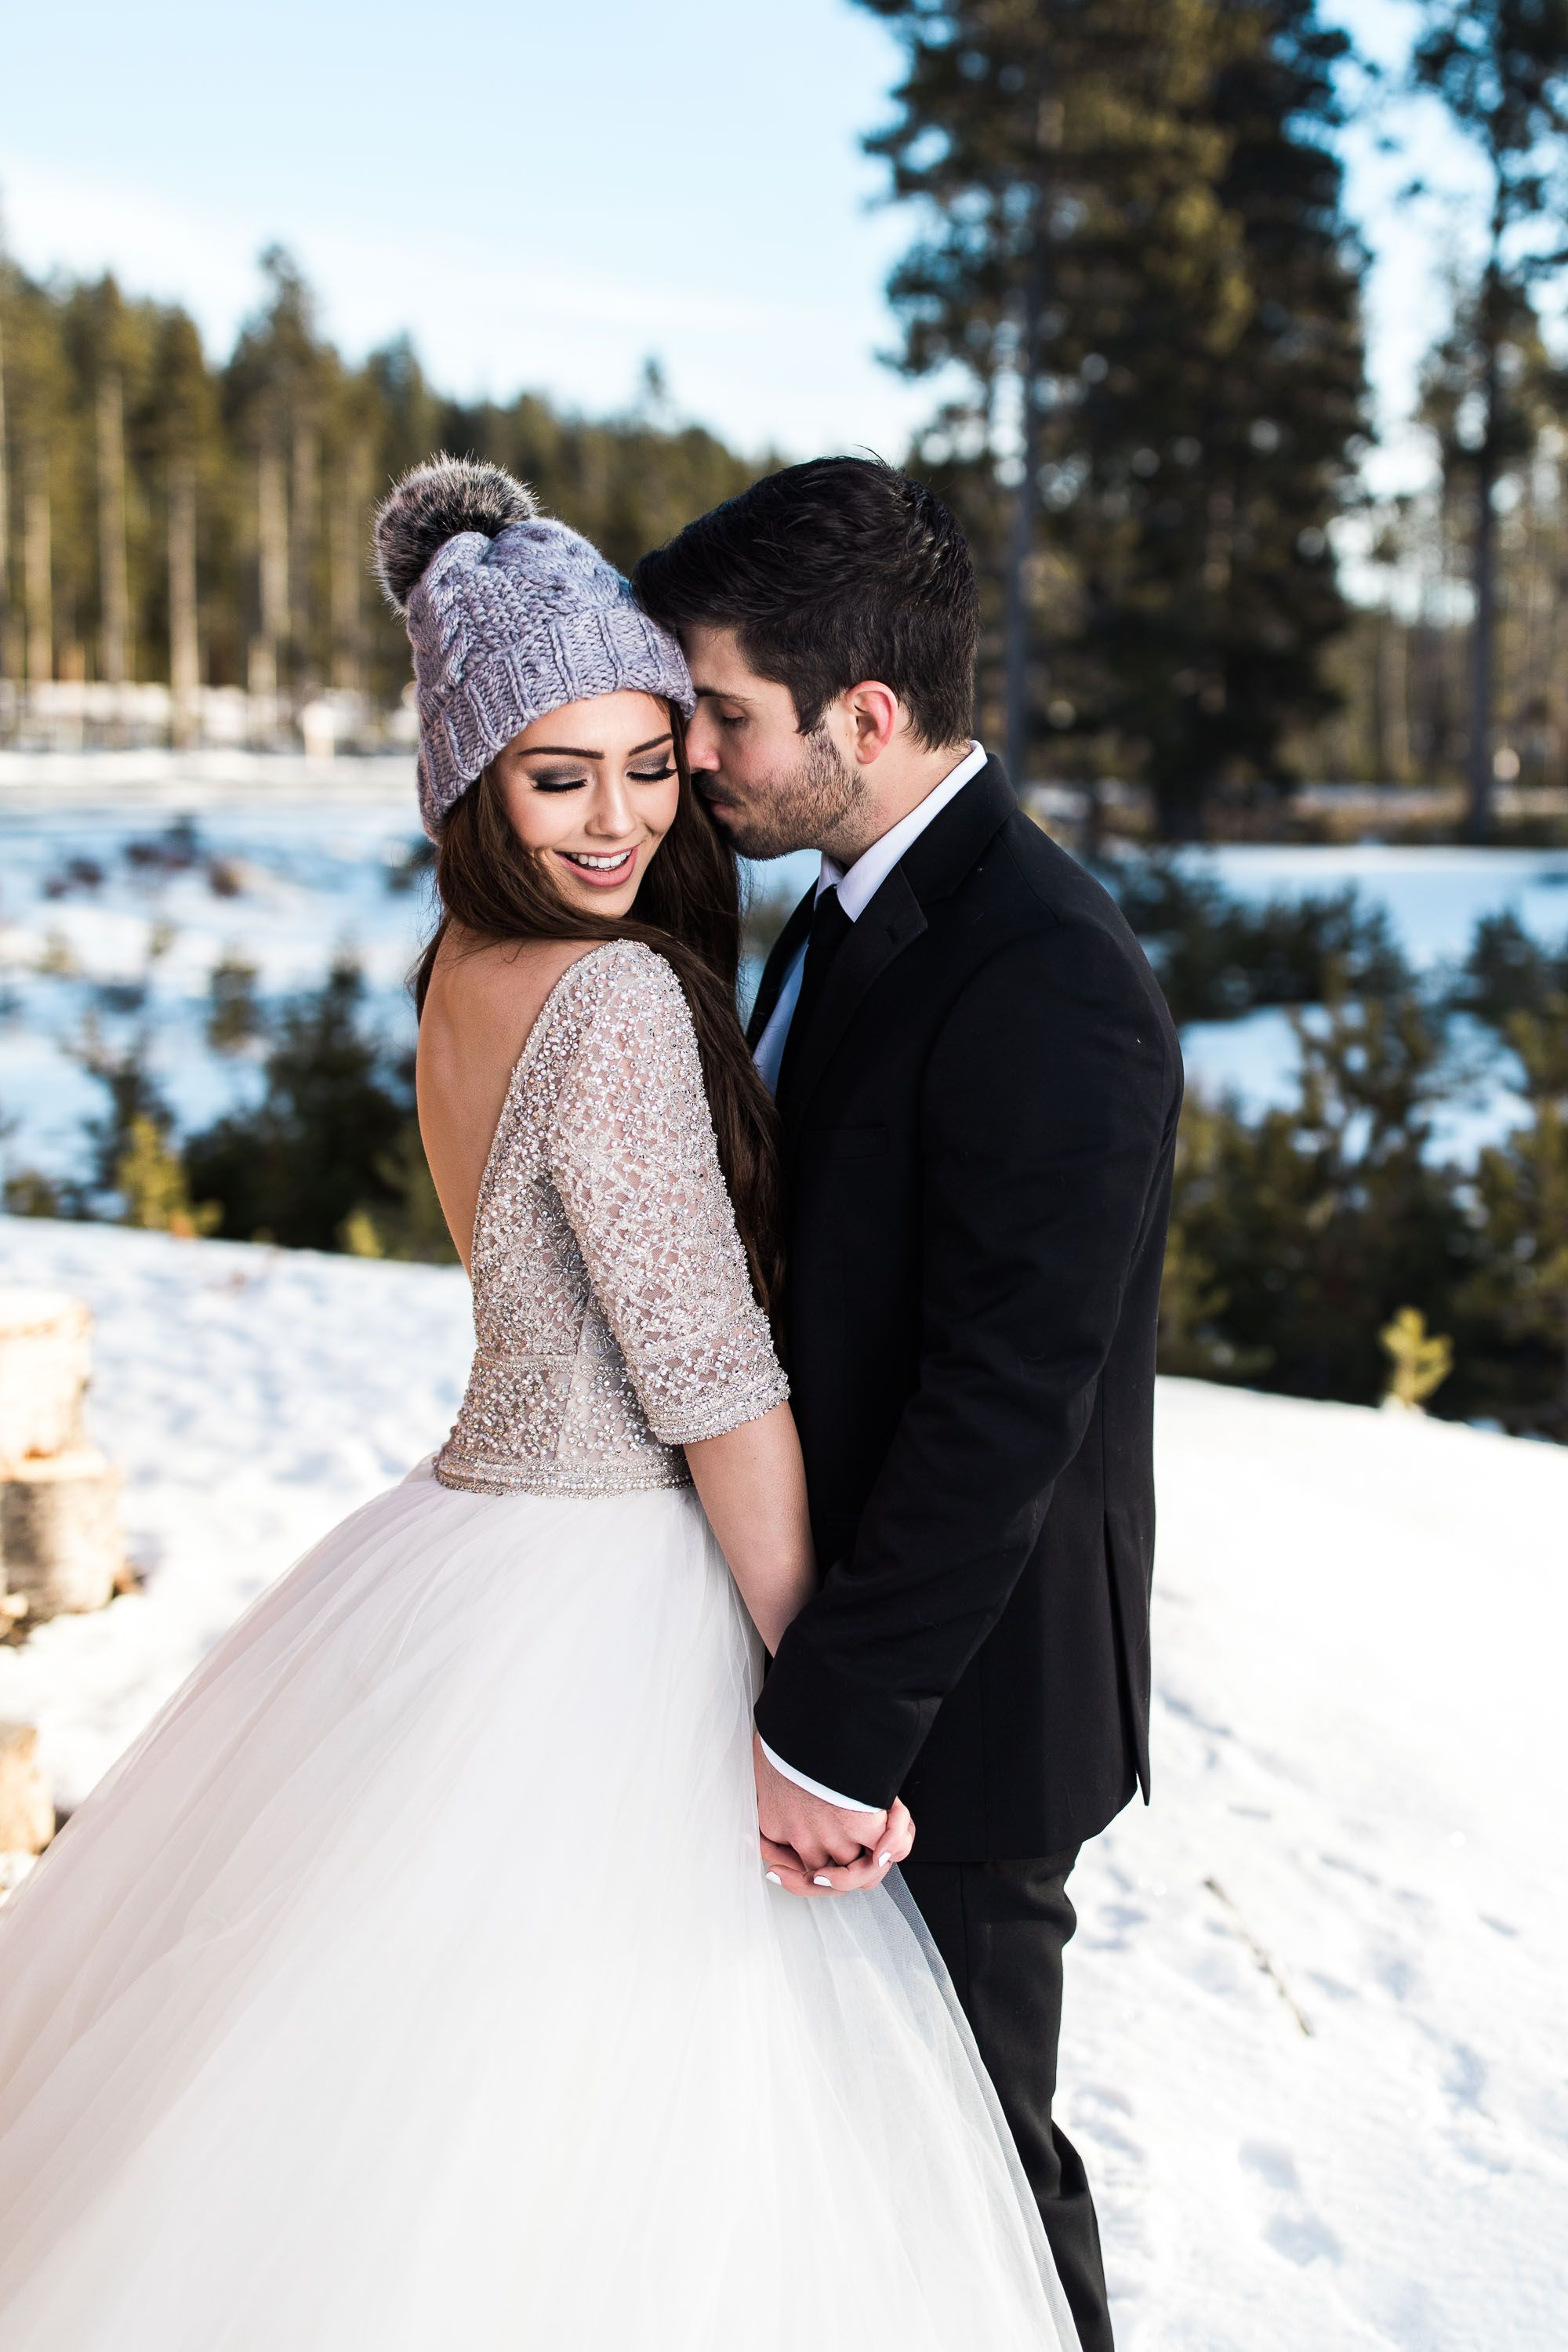 882c4433643f A fuzzy hat makes this winter wedding moment that much cuter. Allen wedding  dress by Sottero and Midgley. #SotteroandMidgley #winterwedding ...